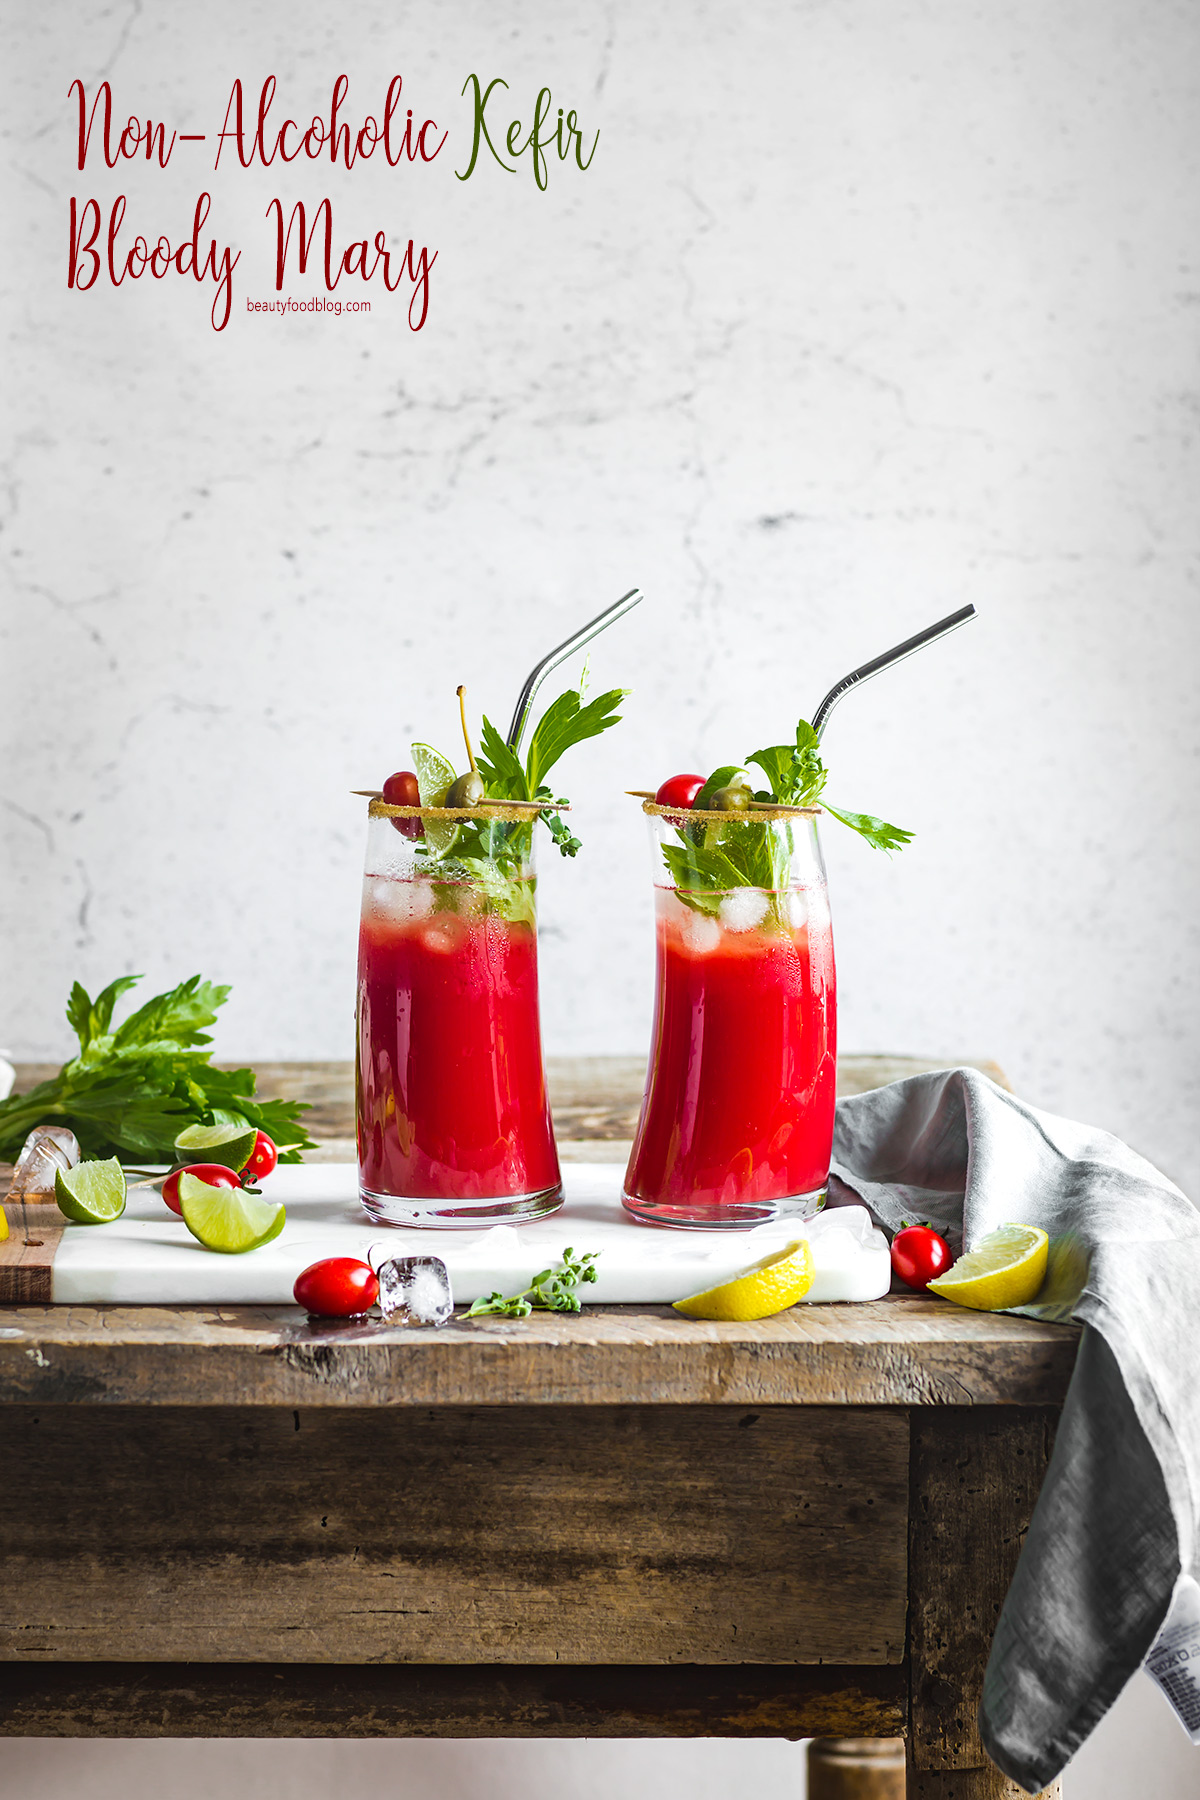 Vegan Water Kefir Virgin Mary recipe #cocktail ricetta Bloody Mary Analcolico al Kefir d acqua per brunch #healthy cocktail vegan senza glutine